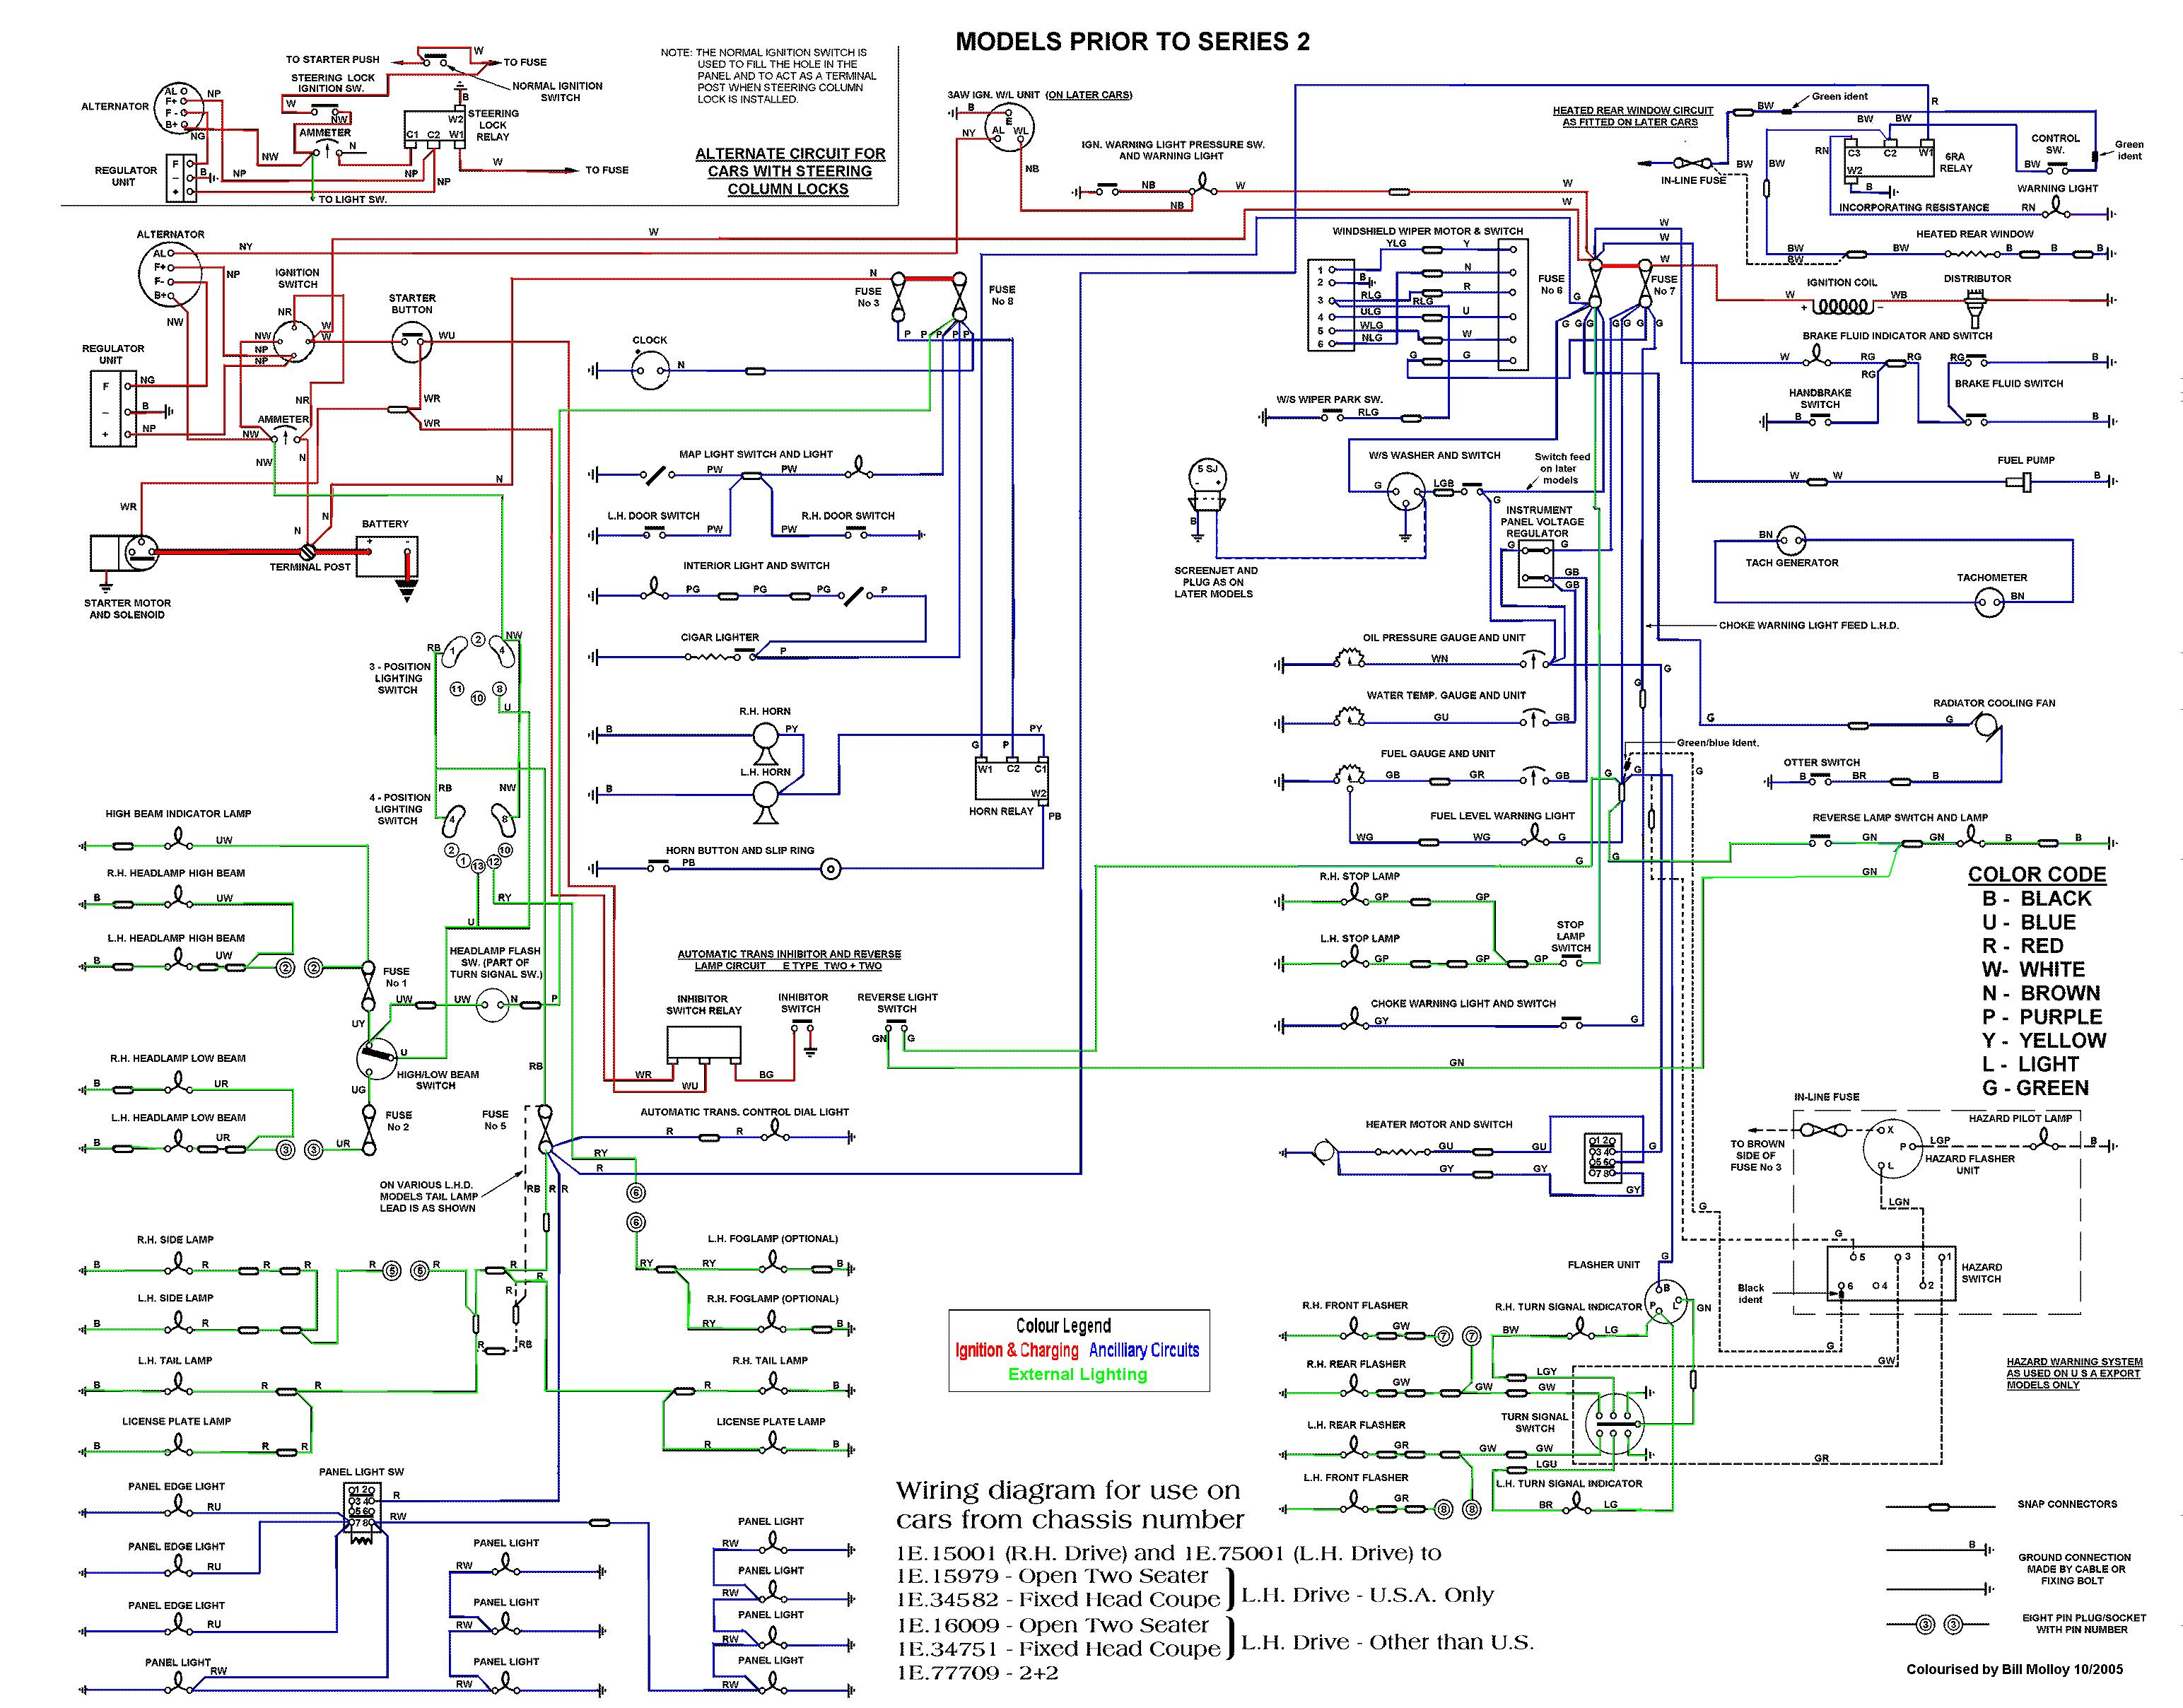 2003 jaguar s type wiring diagram zAKOGhQ jaguar xj6 wiring diagram efcaviation com Kia Rio 2003 Wiring-Diagram at virtualis.co